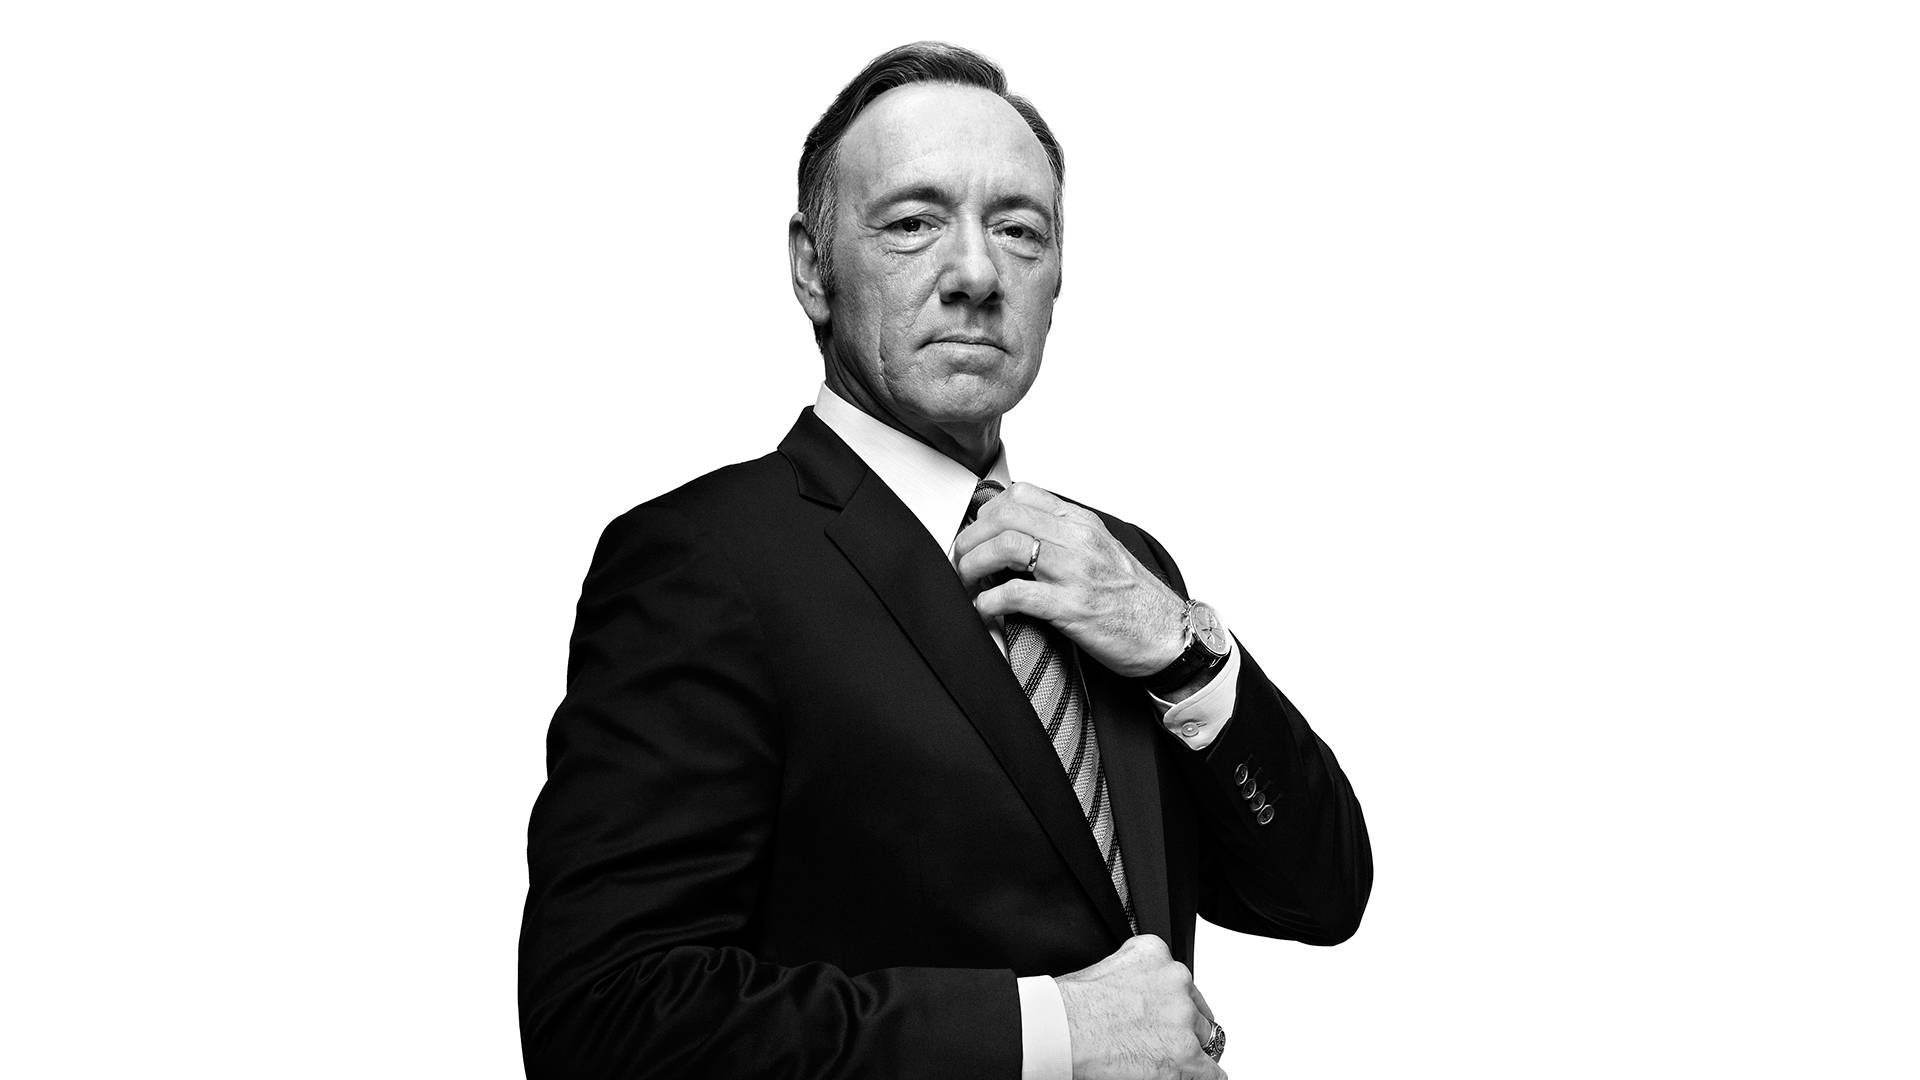 1920x1080 - Kevin Spacey Wallpapers 5